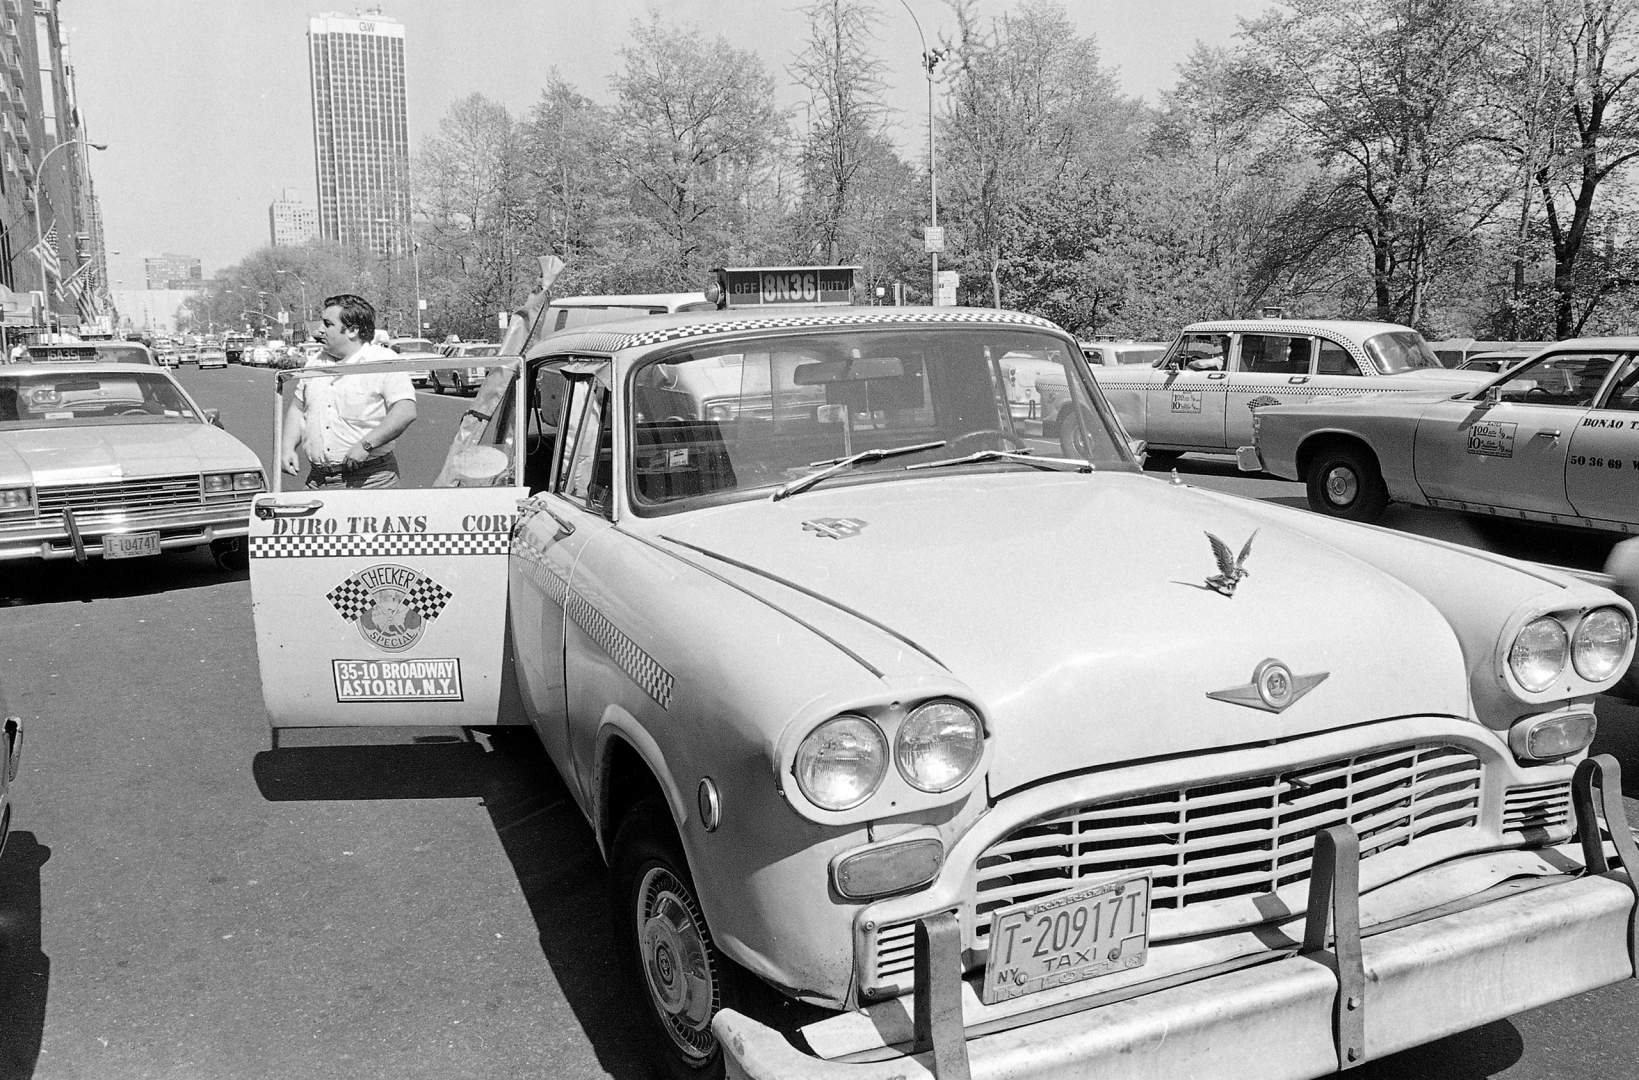 Watchf Associated Press Domestic News  New York United States APHS56512 NYC TAXI CHECKERED CAB 1982